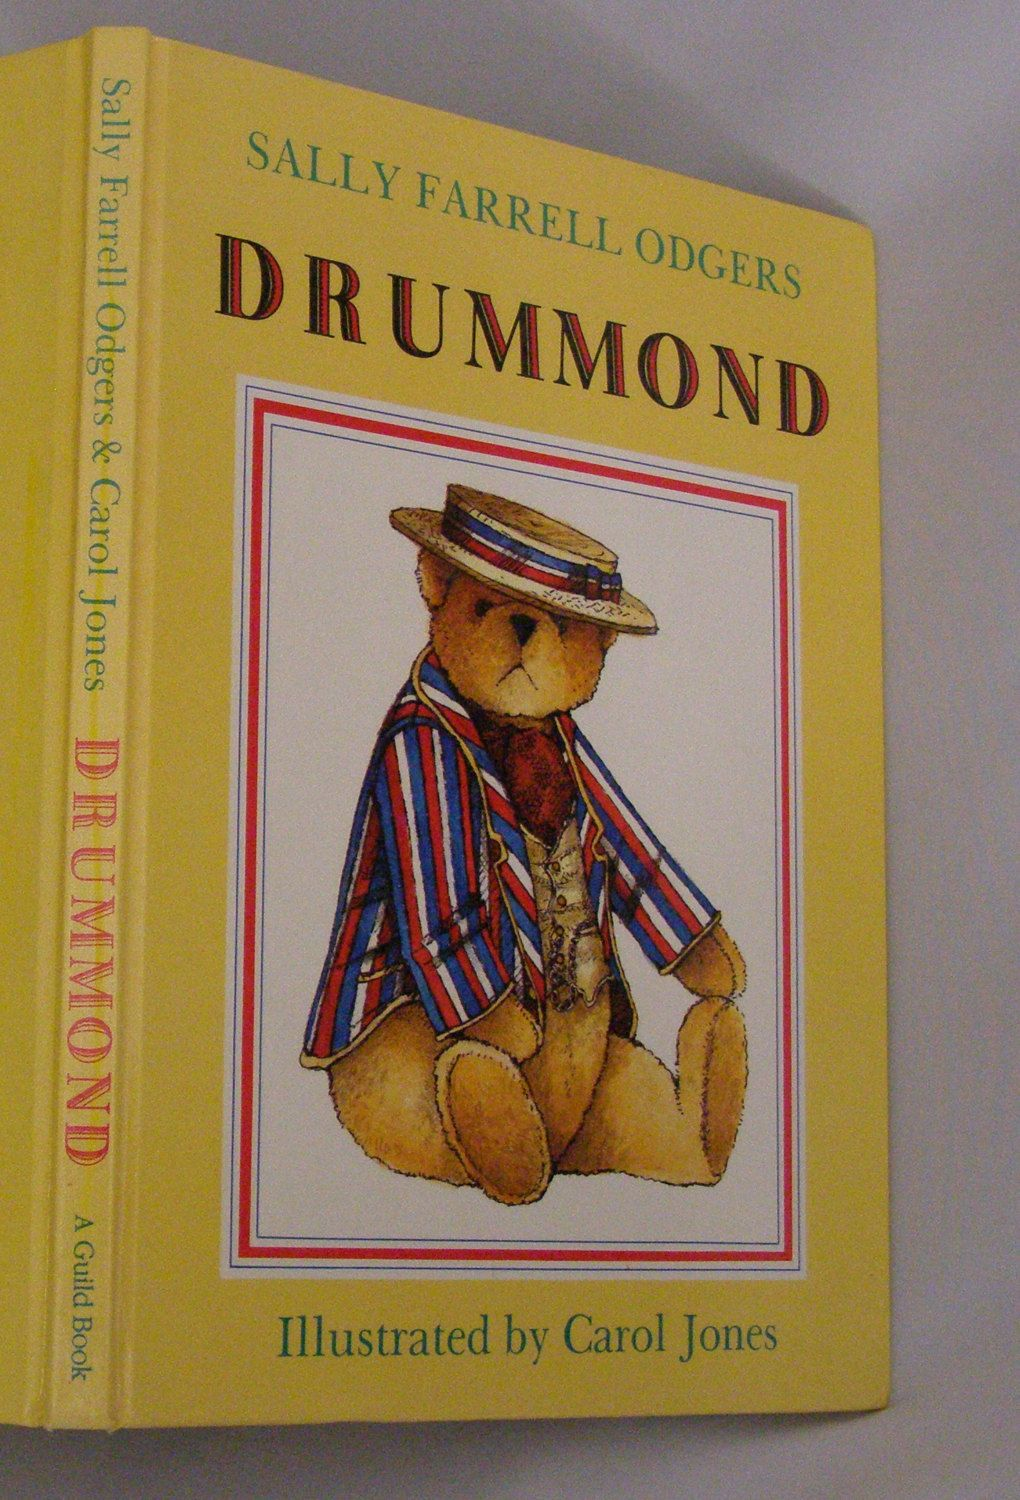 Early Edition~ Drummond by Sally Farrell Odgers 1990 Teddy Bear Illustrated by Carol Jones by parkie2 on Etsy